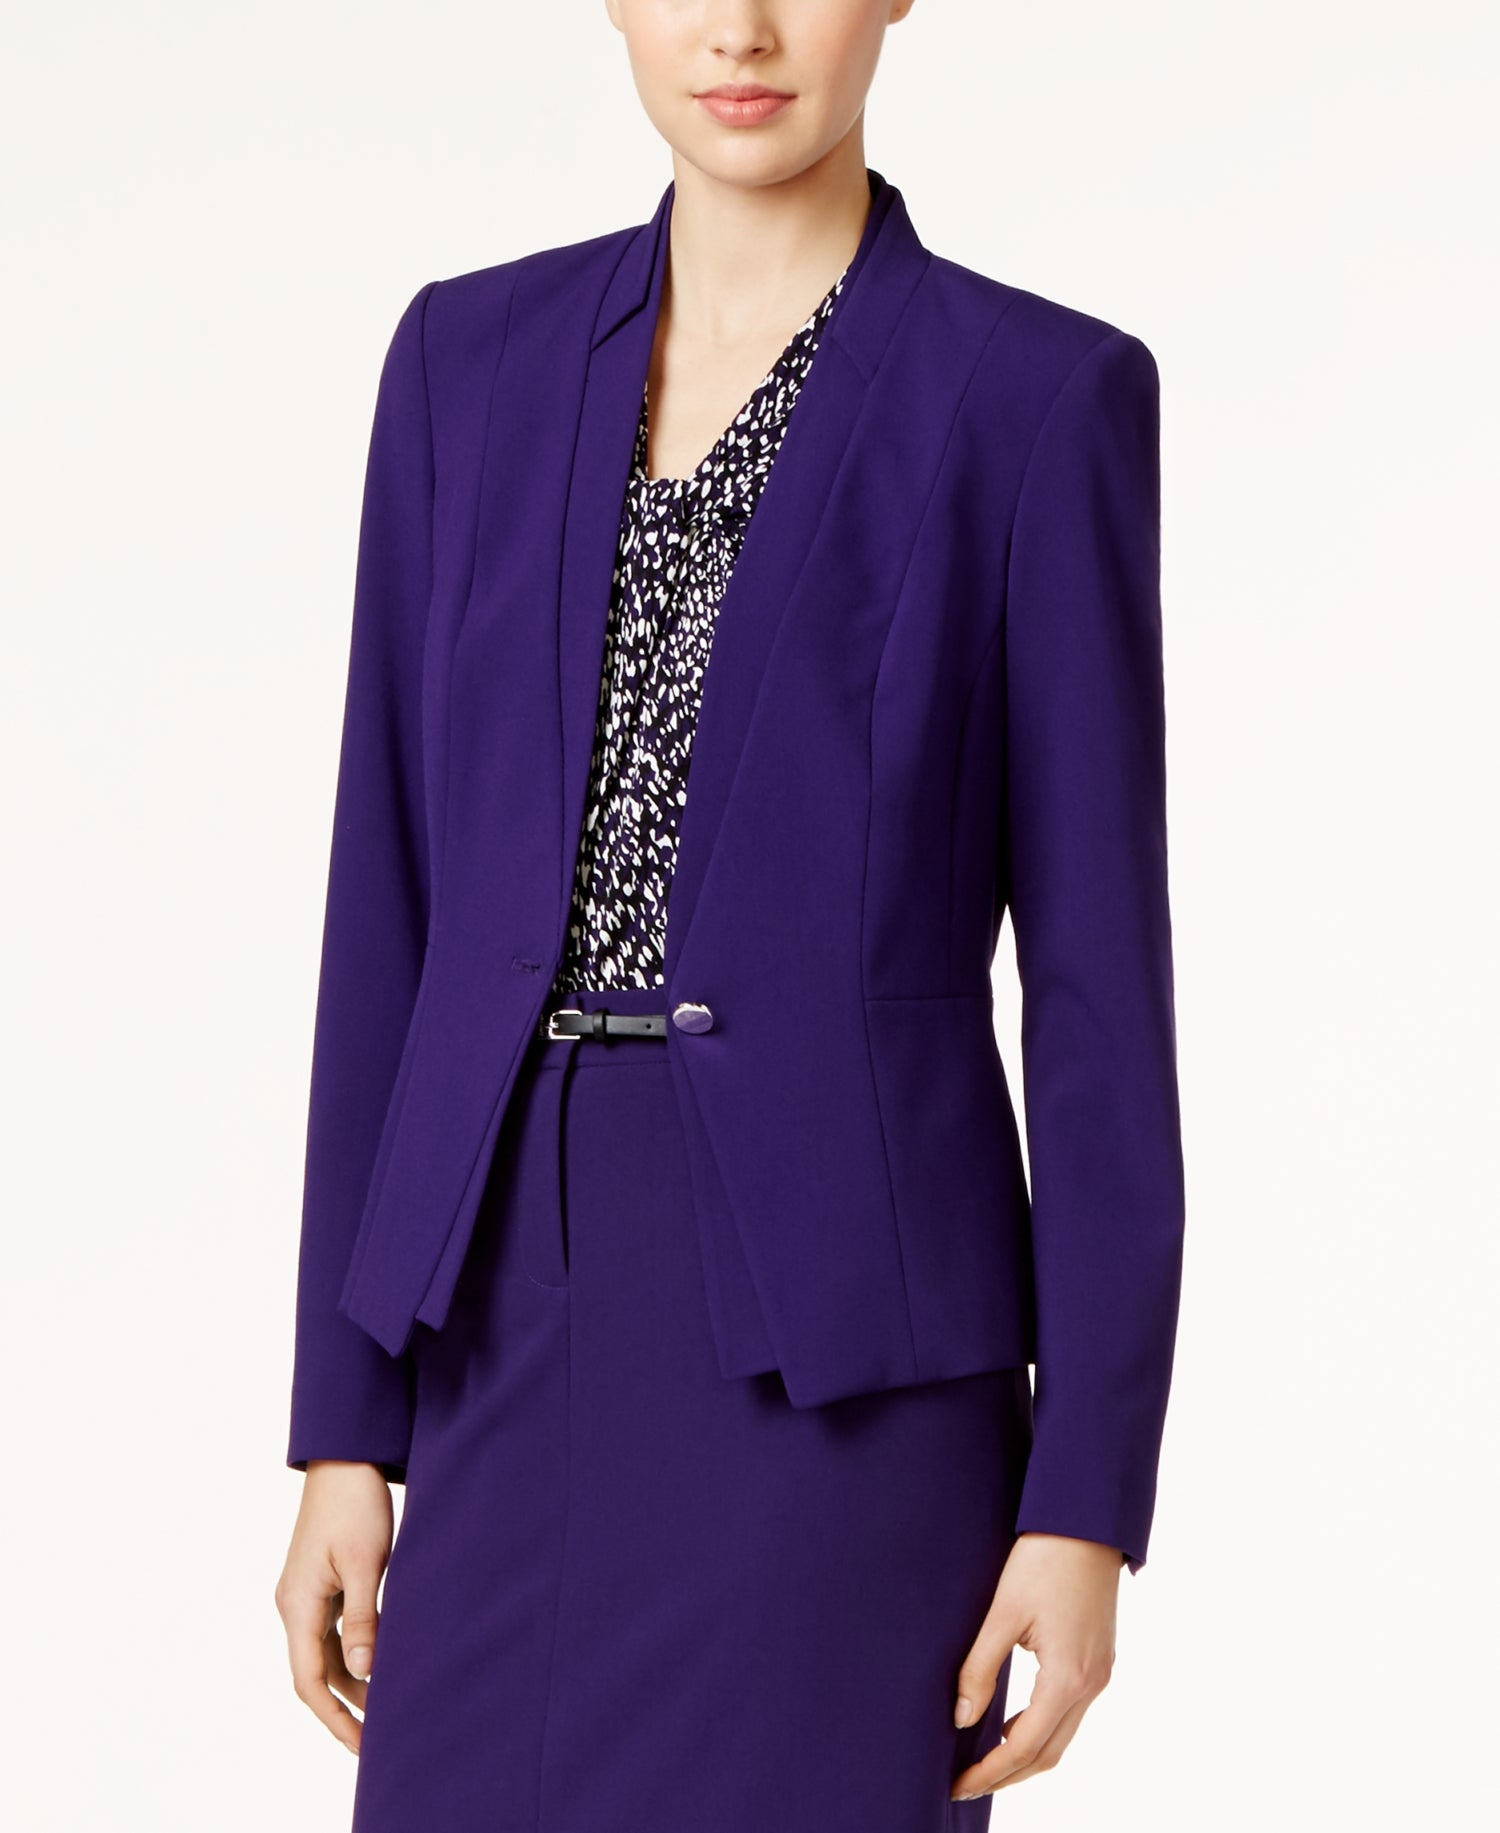 Calvin Klein Womens Suits Macys